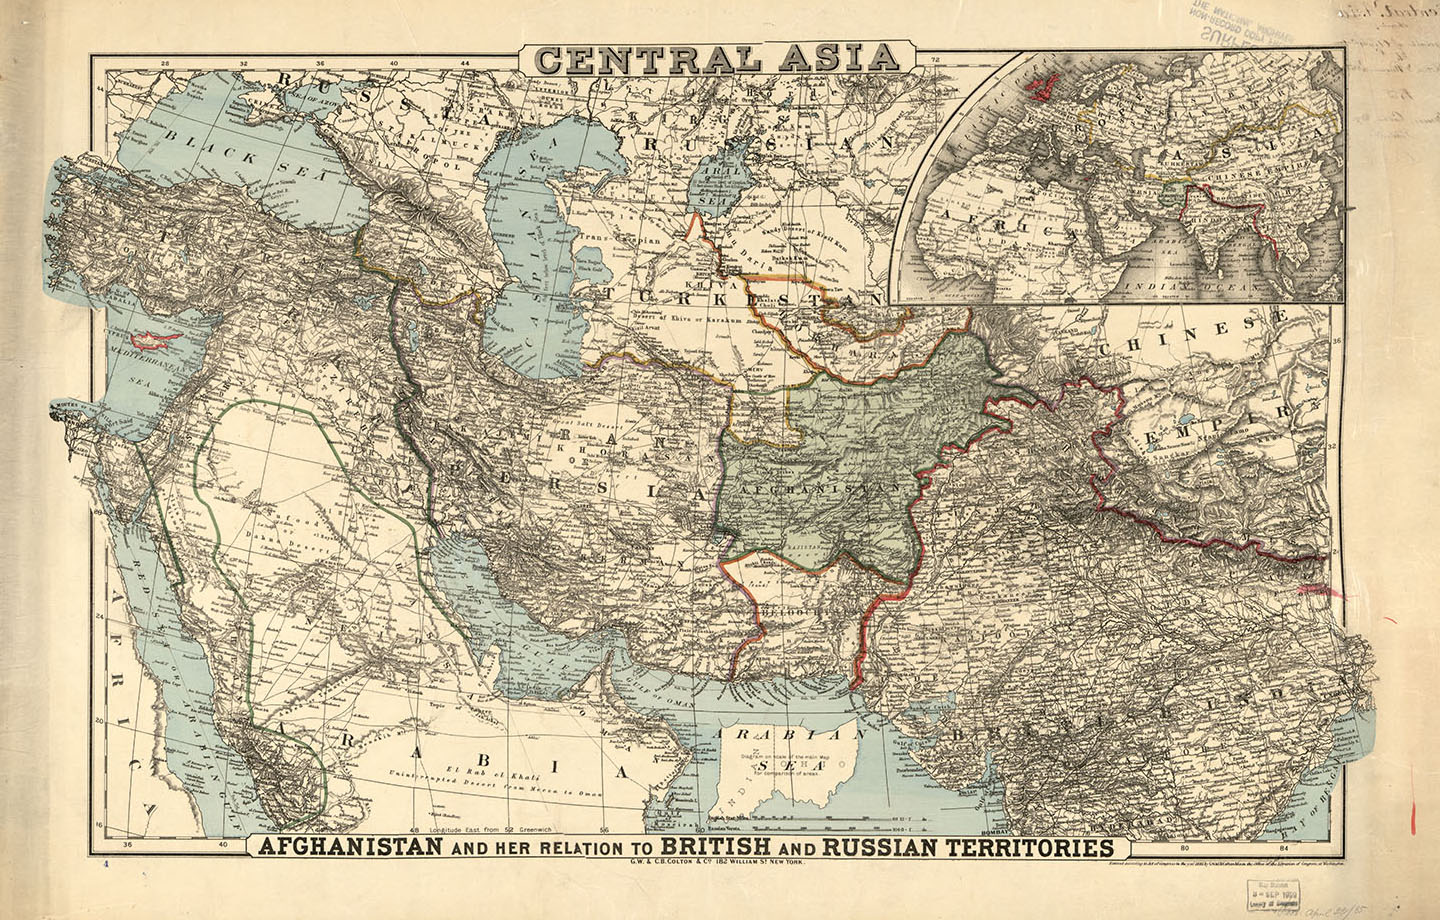 Map of Central Asia, 1885.